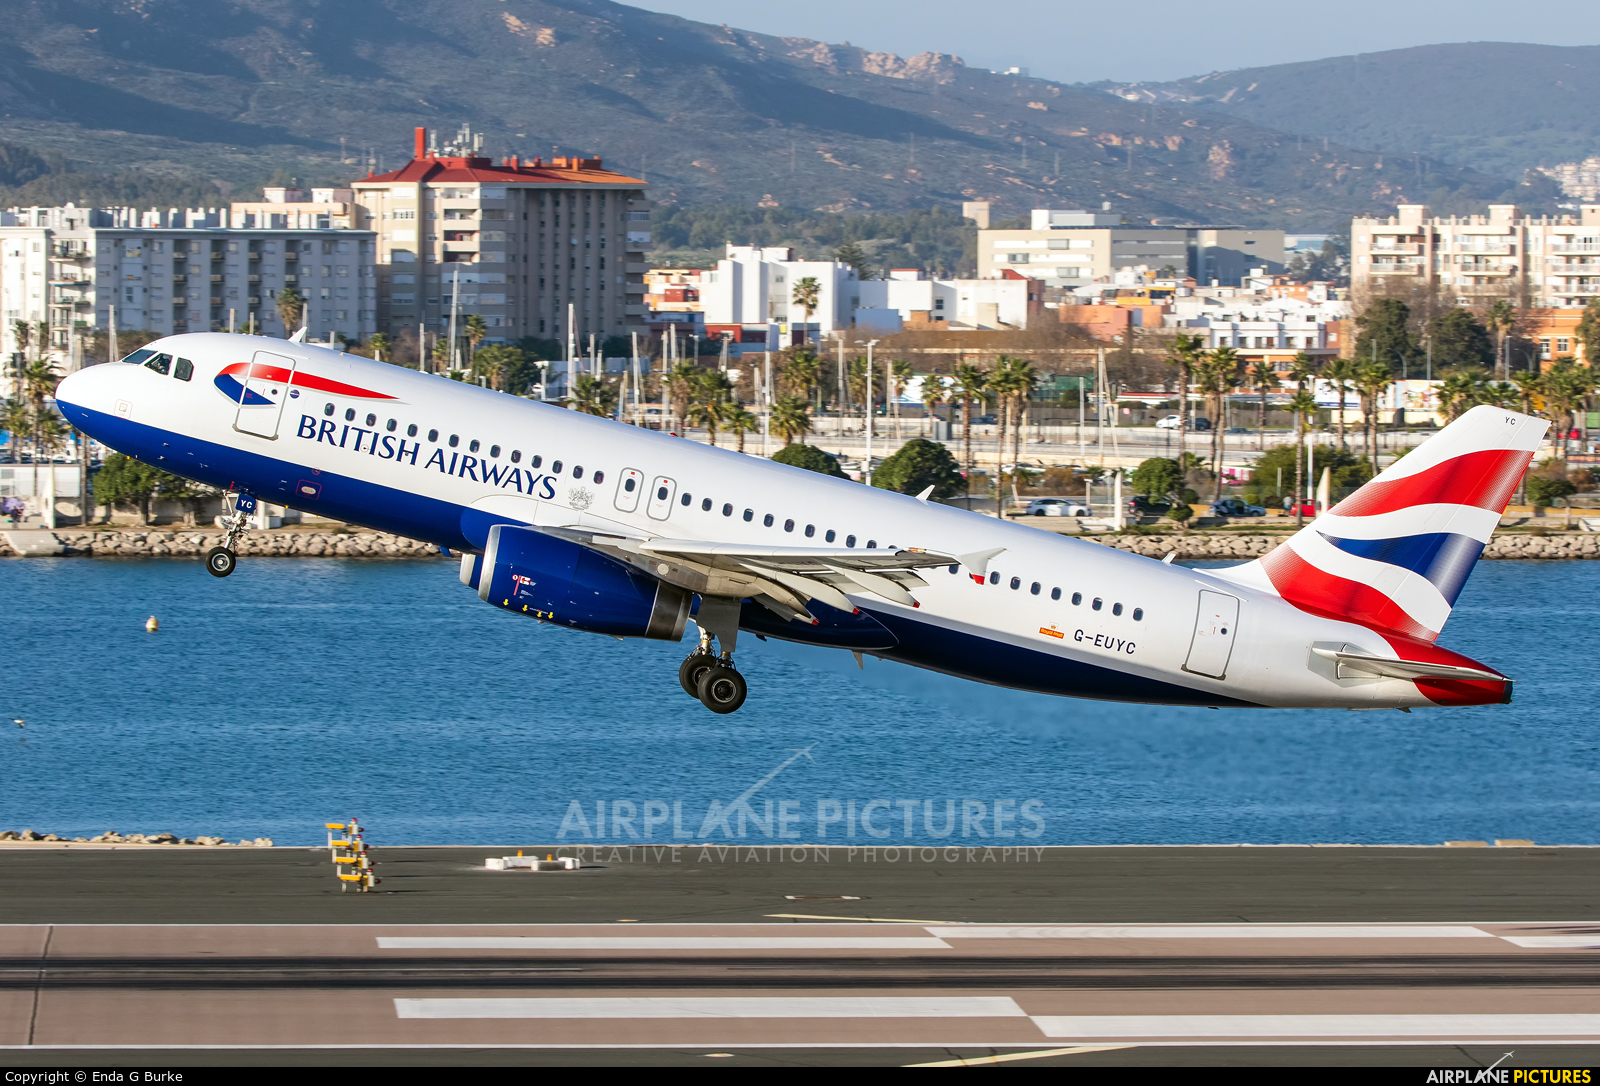 British Airways G-EUYC aircraft at Gibraltar